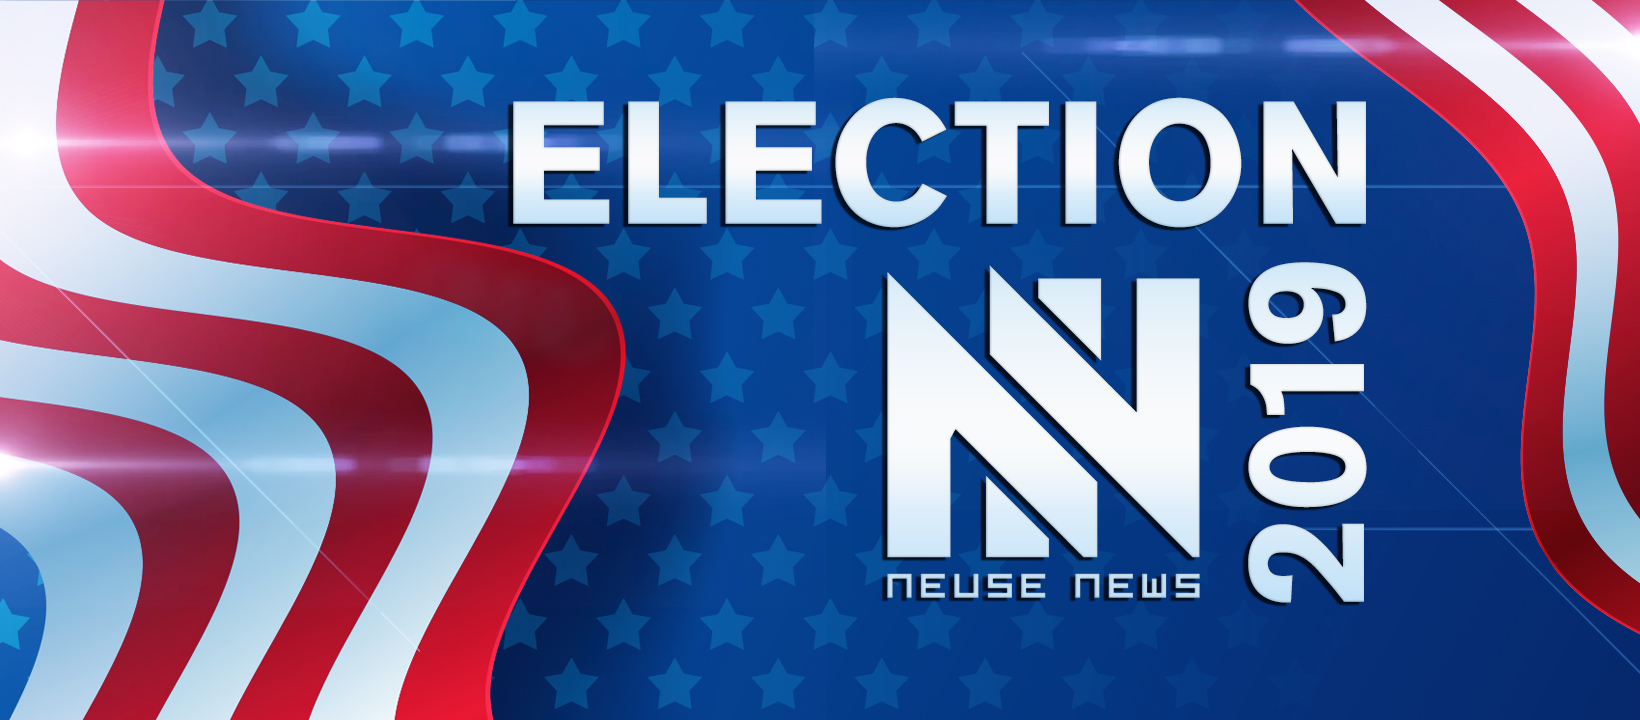 Click the image to see all the Election 2019 coverage by Neuse News.